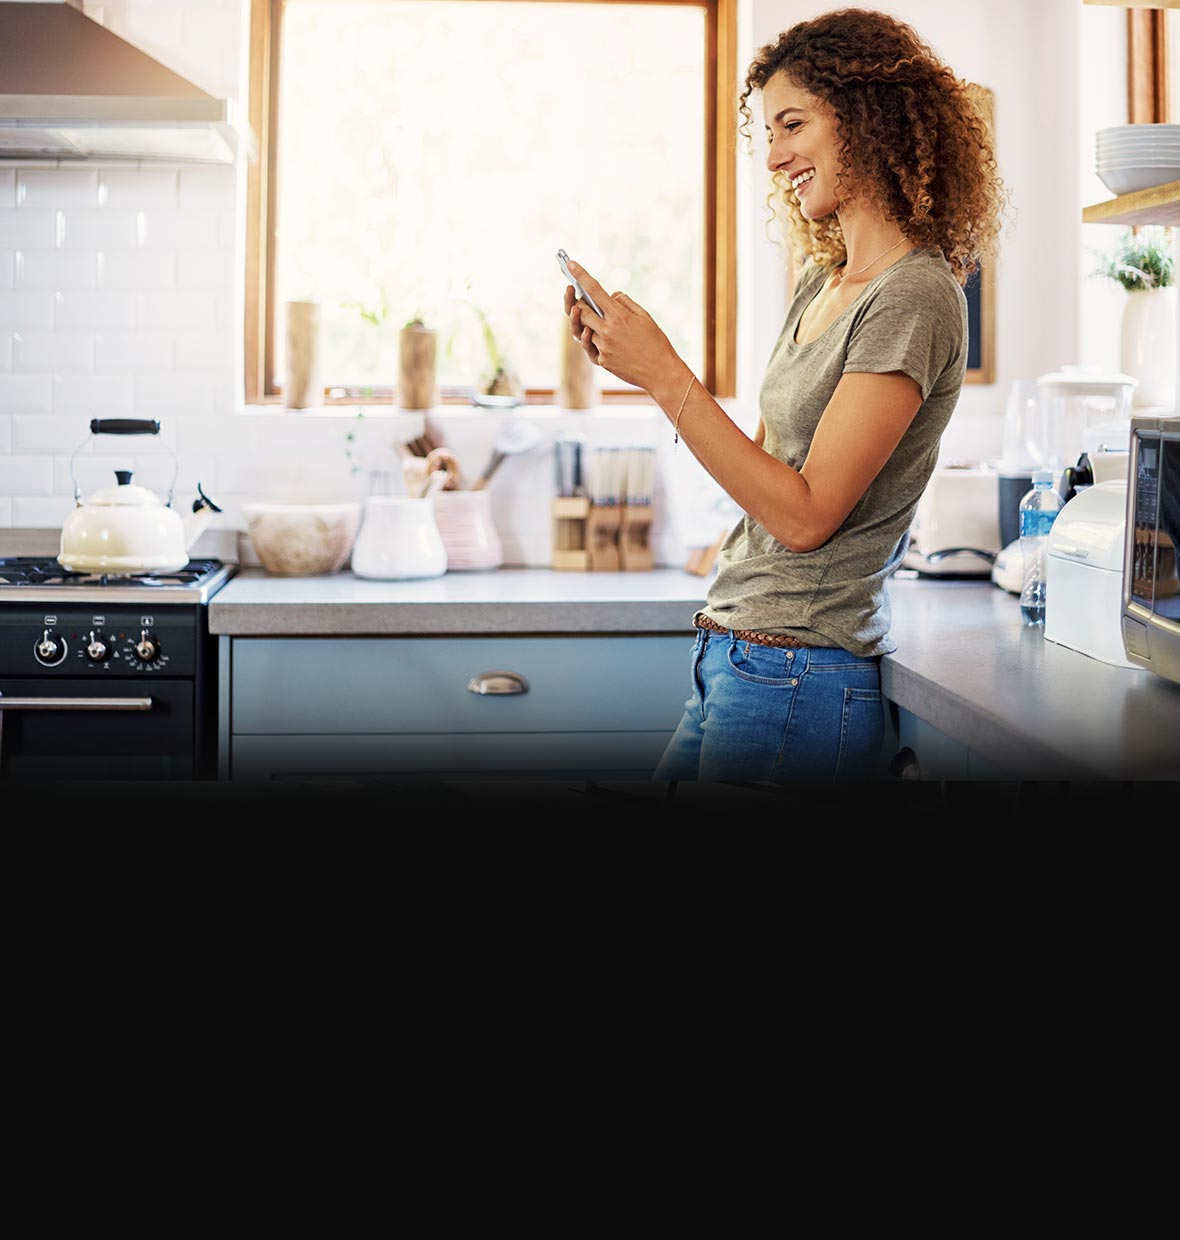 woman on mobile phone in kitchen